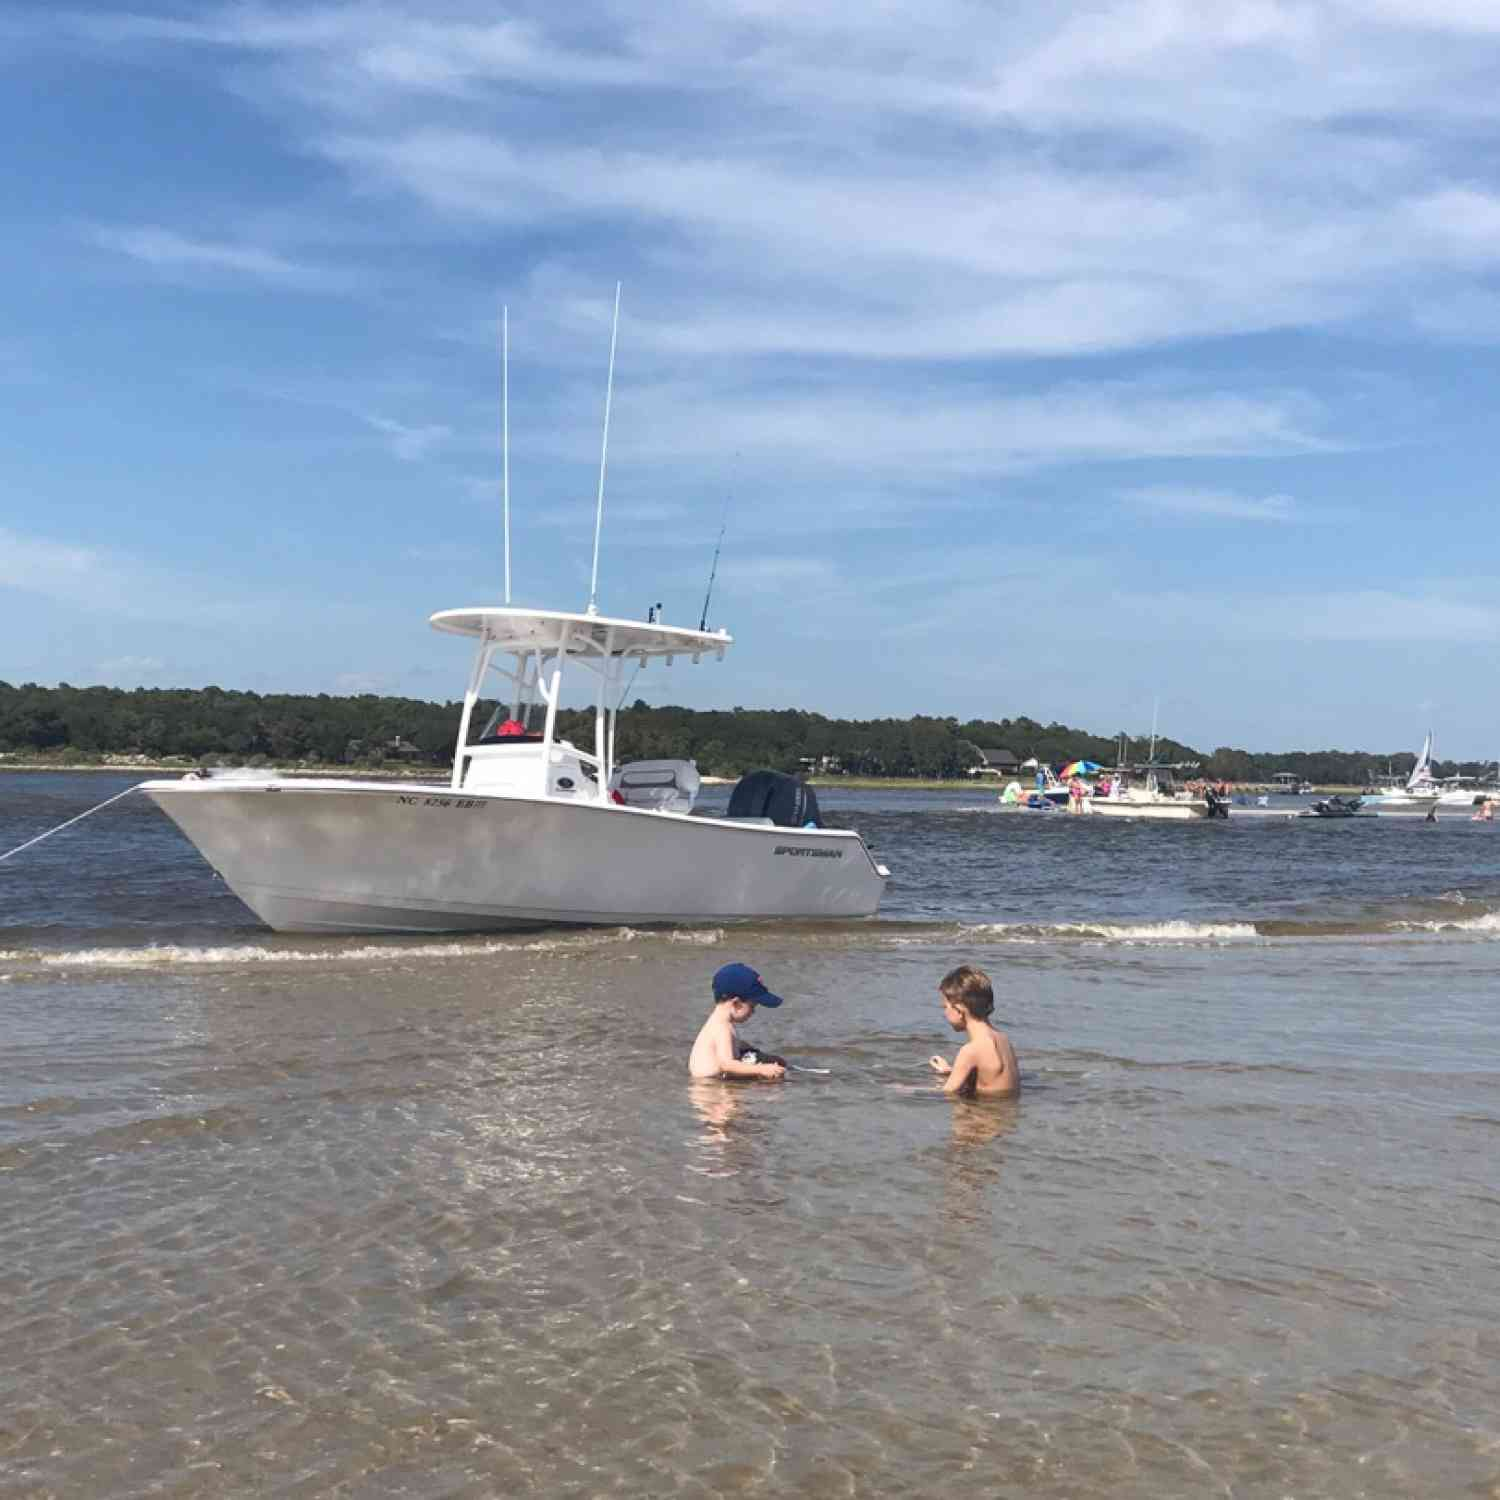 Title: Tides coming in! - On board their Sportsman Open 212 Center Console - Location: Oak Island NC. Participating in the Photo Contest #SportsmanJuly2018